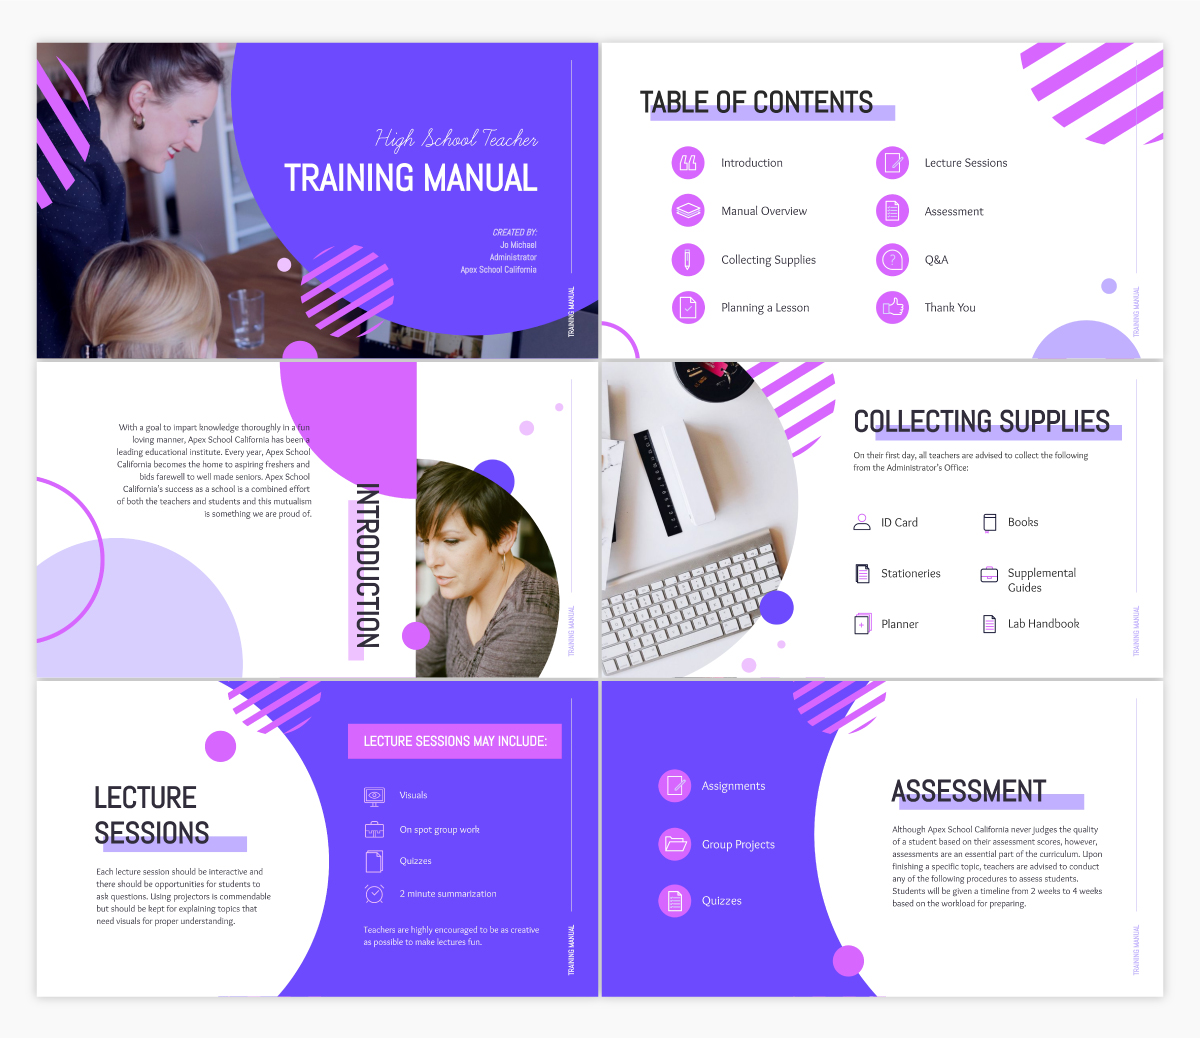 A training manual presentation template available in Visme.